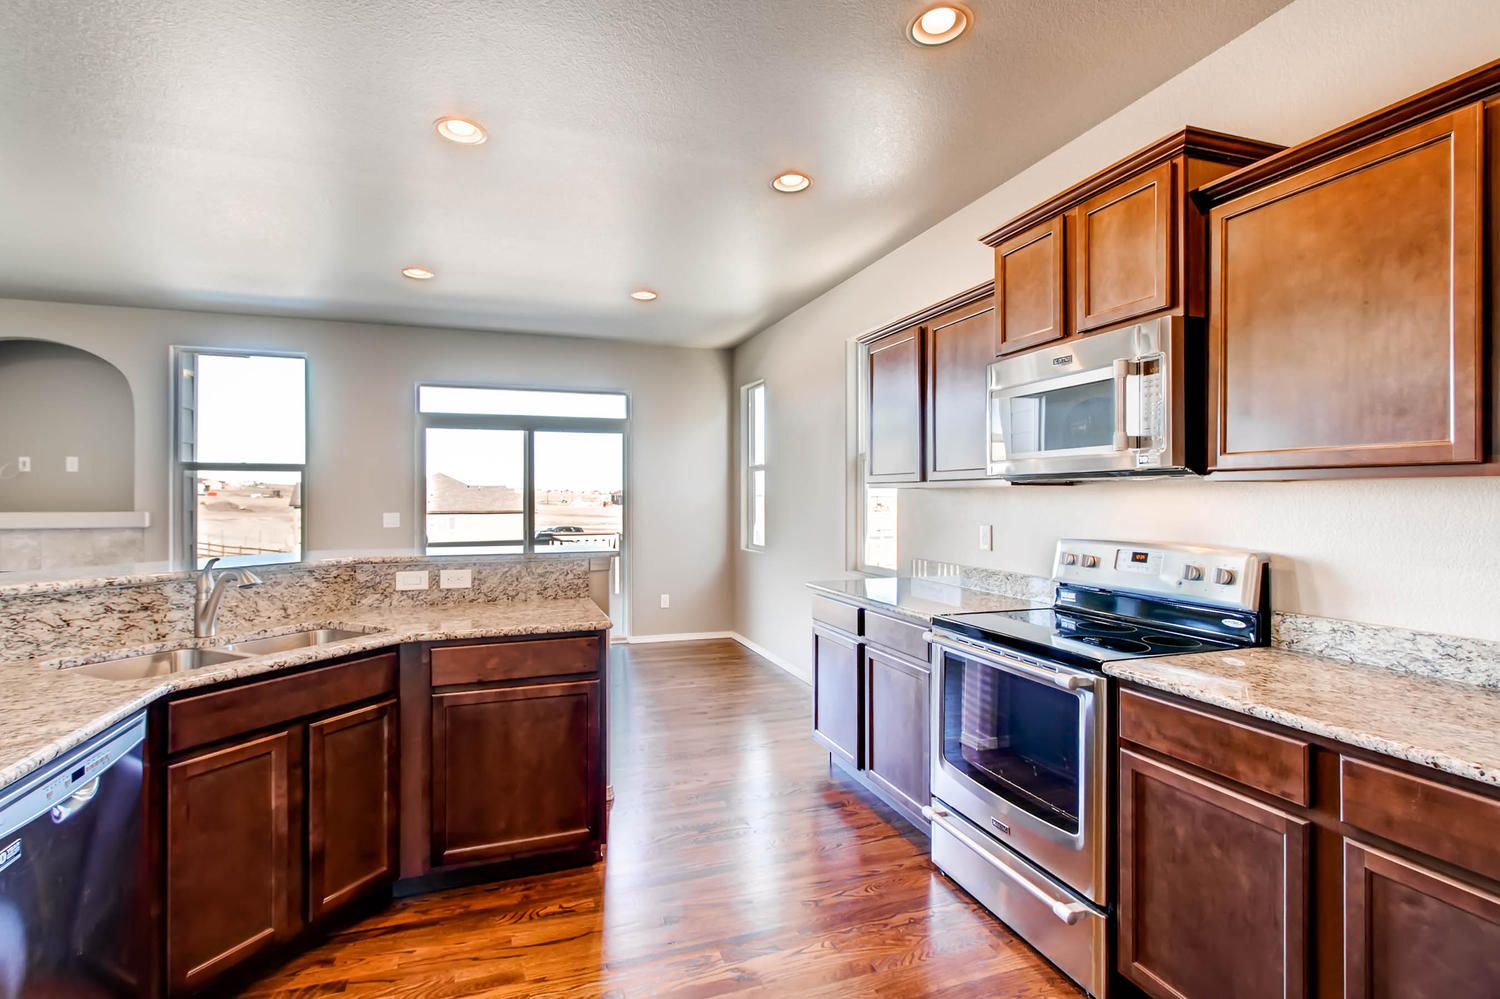 Pin by Campbell Homes at Meridian Ran on Augusta by